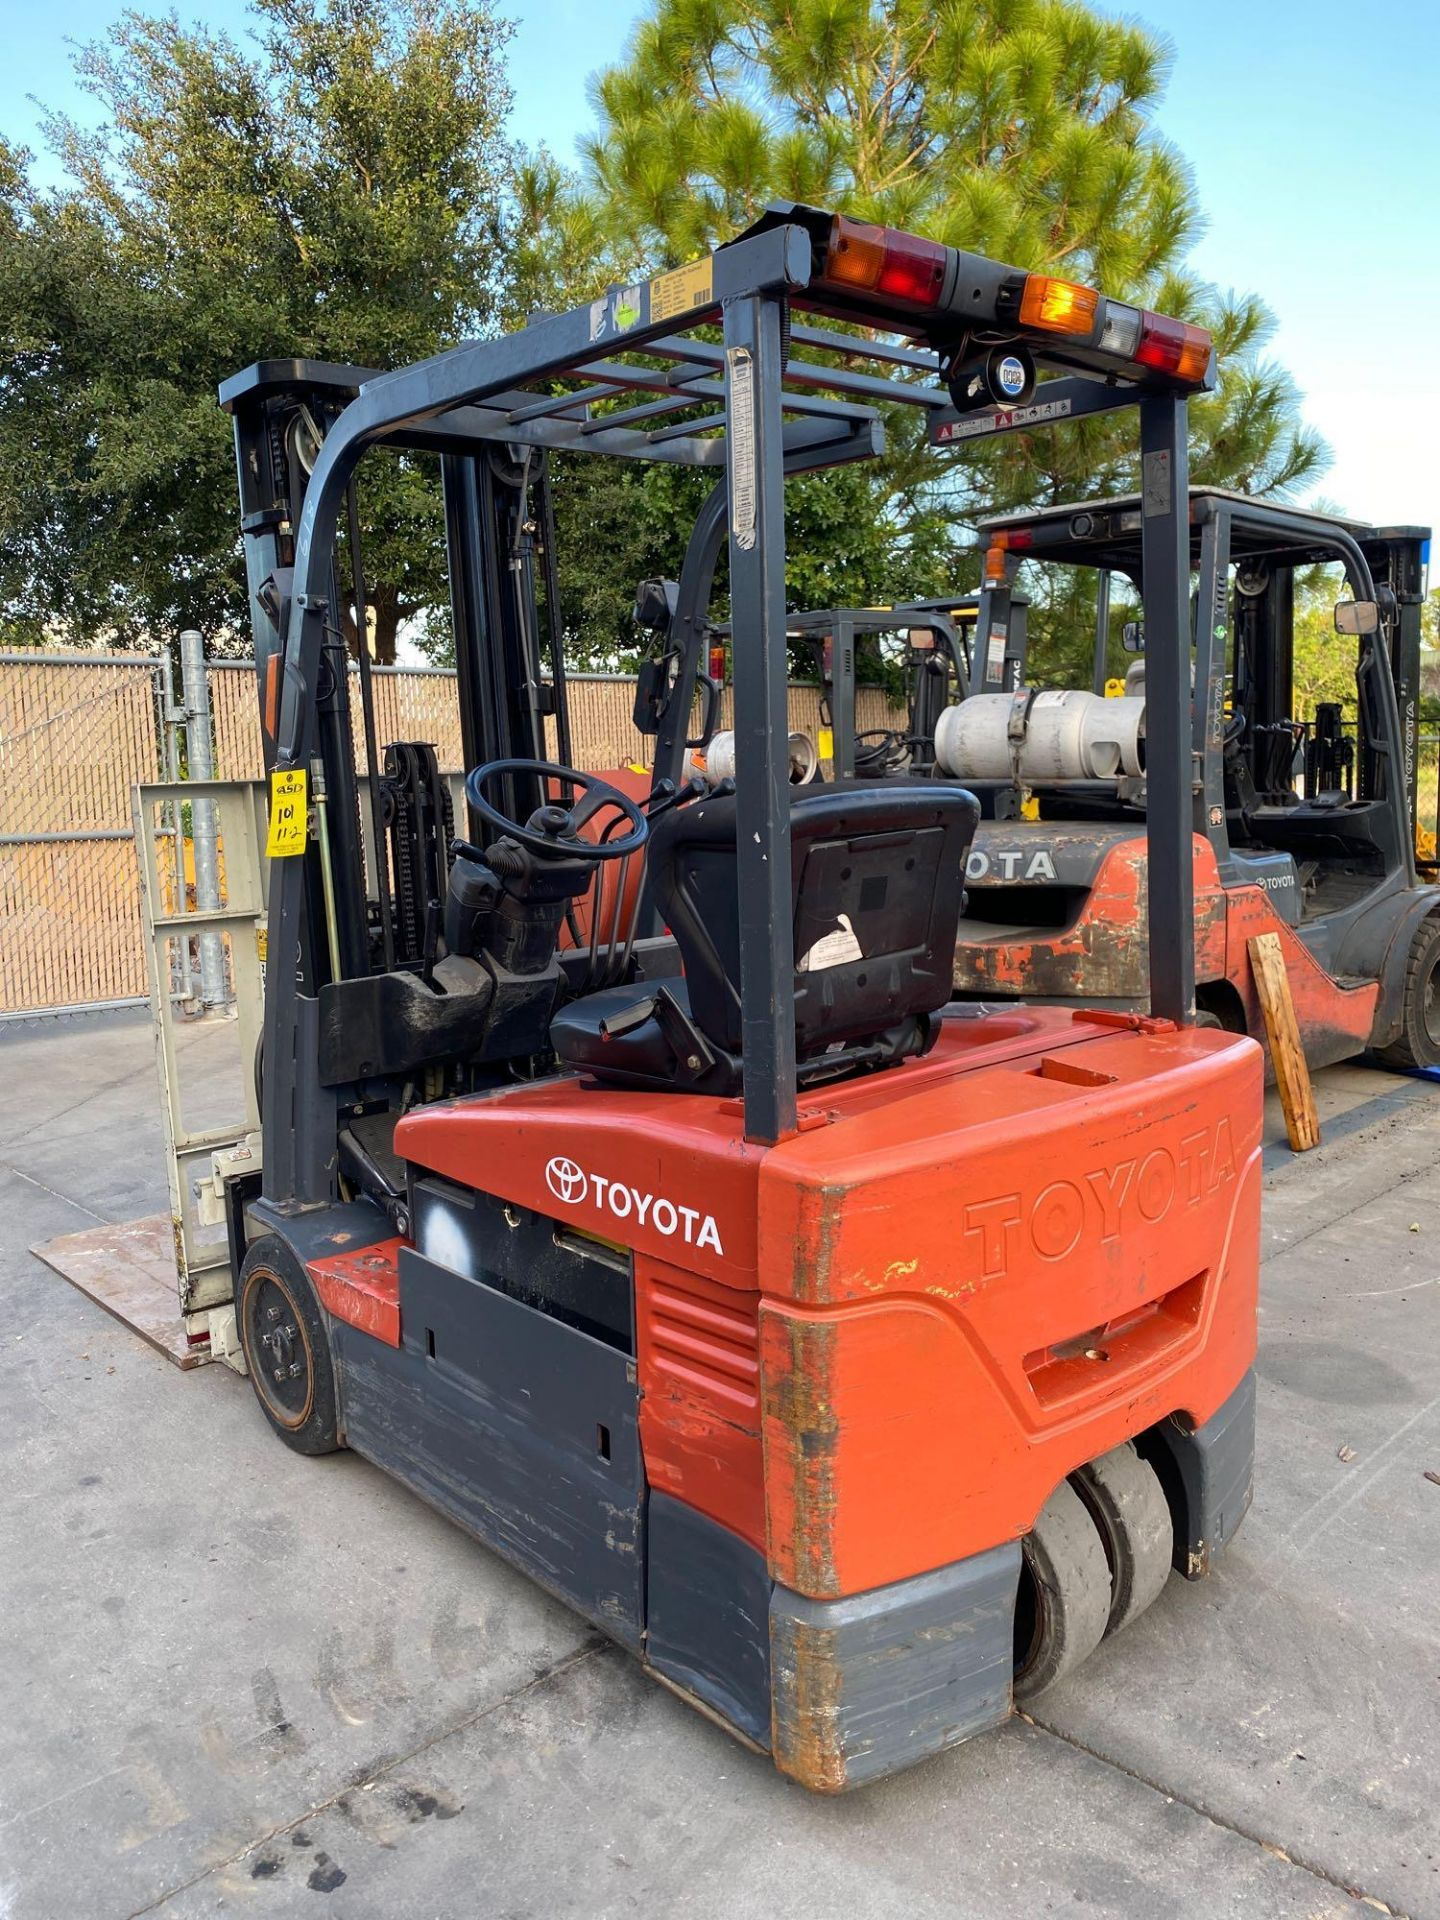 TOYOTA ELECTRIC FORKLIFT MODEL 7FBEU20, 4,000 LB CAPACITY, CASCADE PUSH/PULL ATTACHMENT, TILT, SIDE - Image 15 of 24